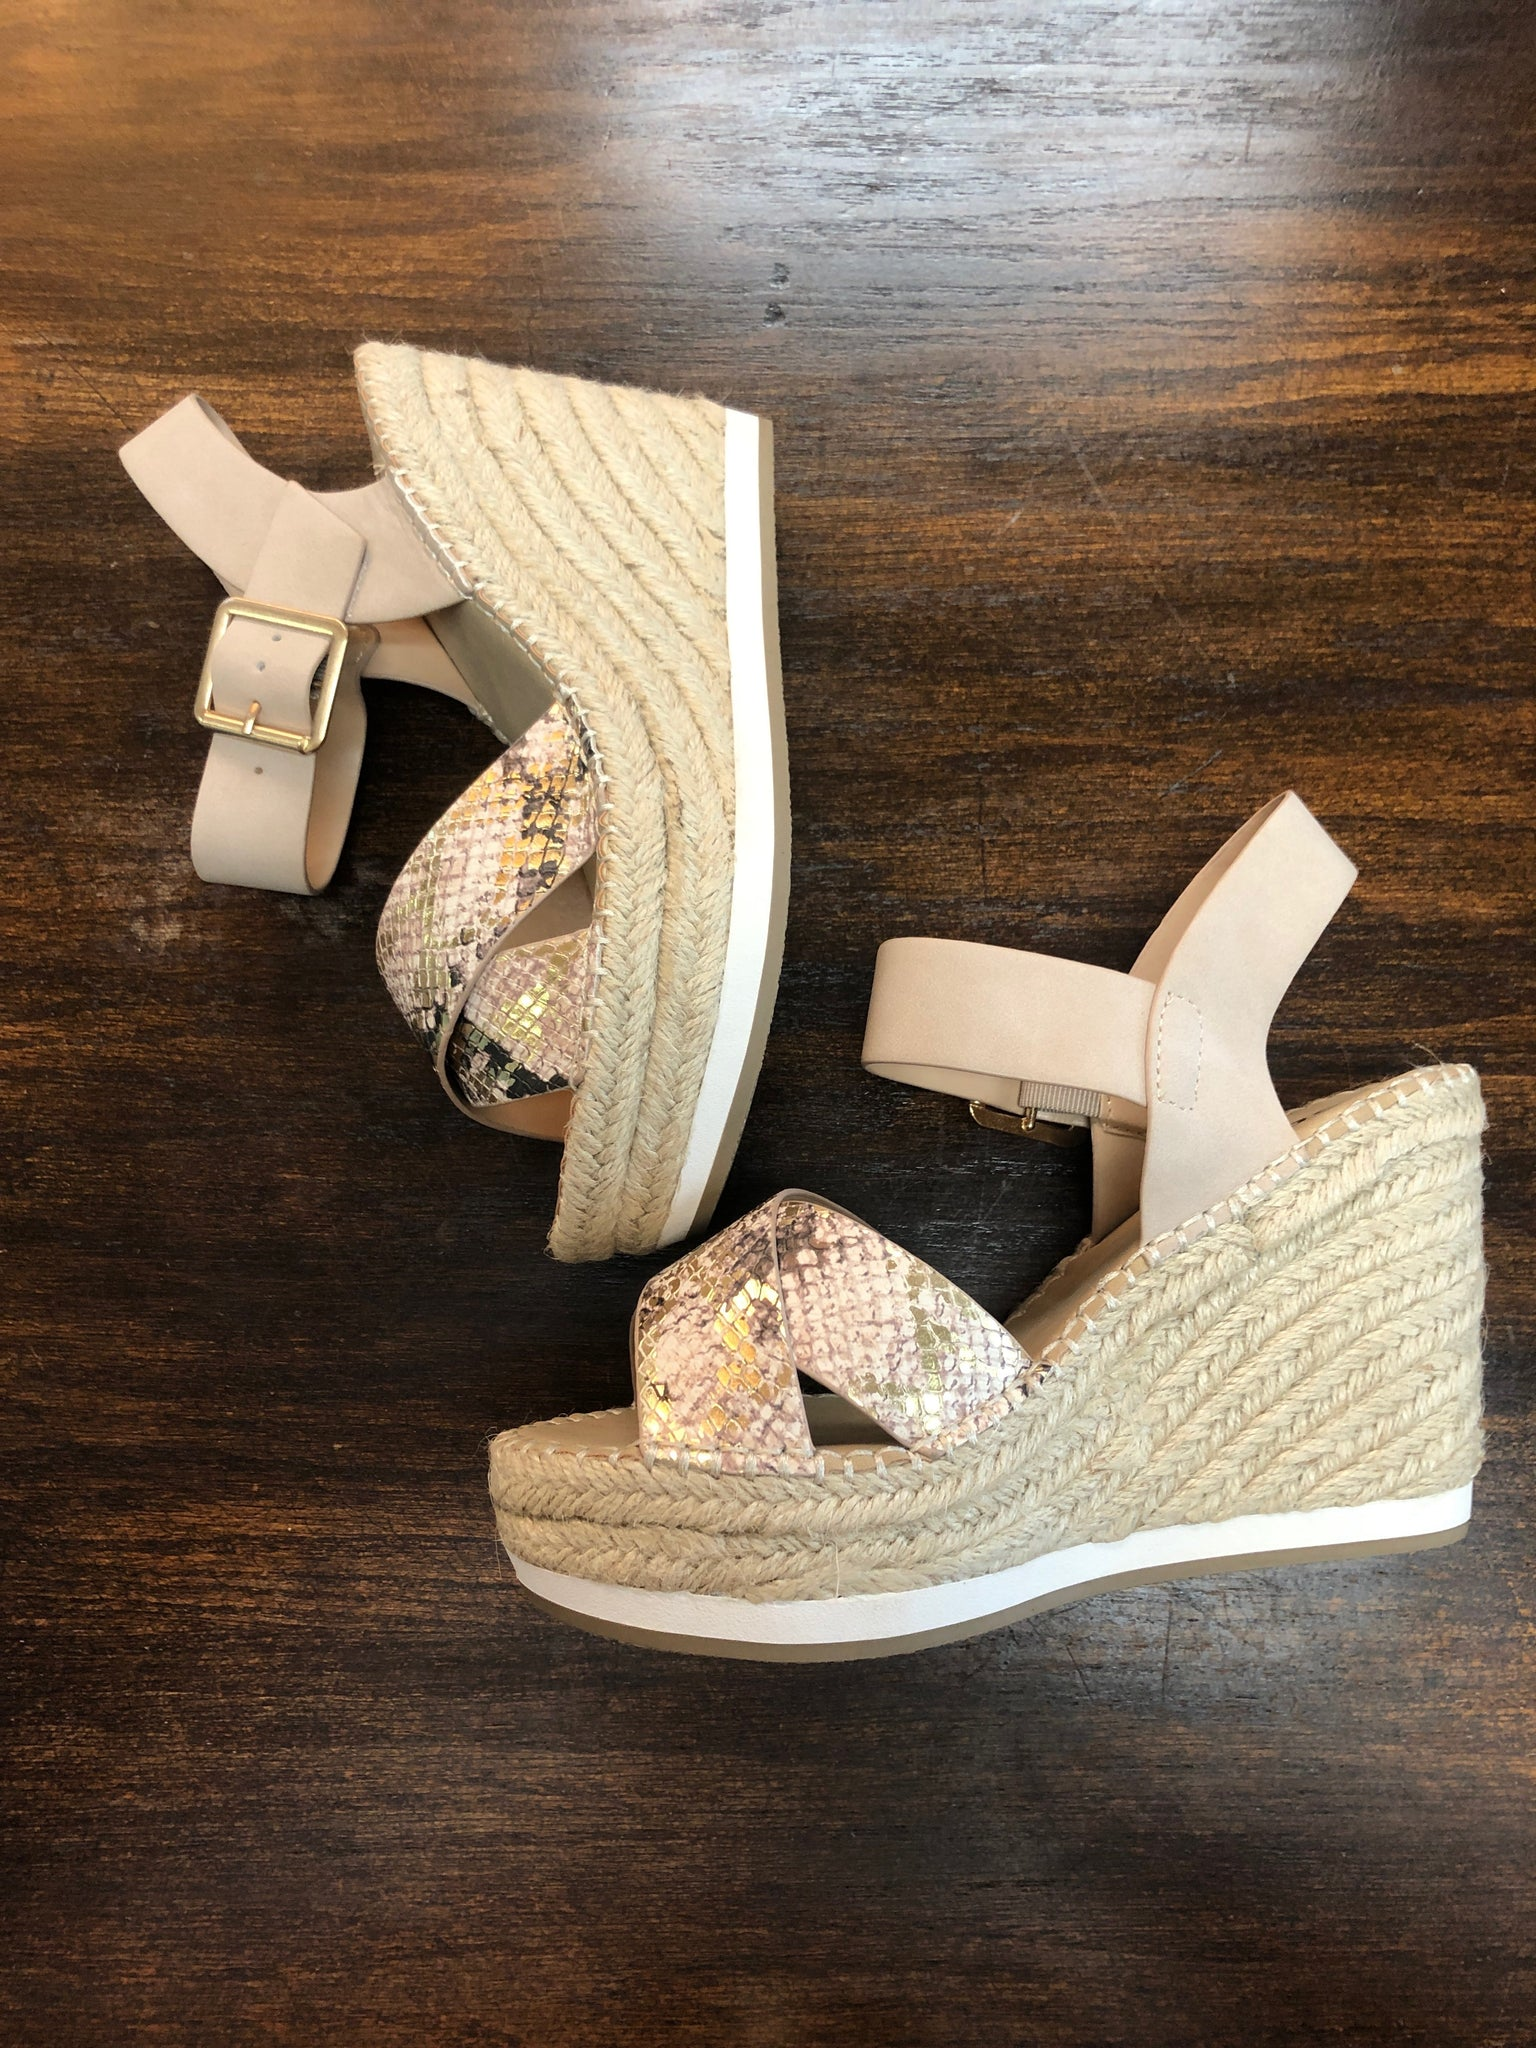 SNAKE PRINT WEDGE - Penny Lane Boutique